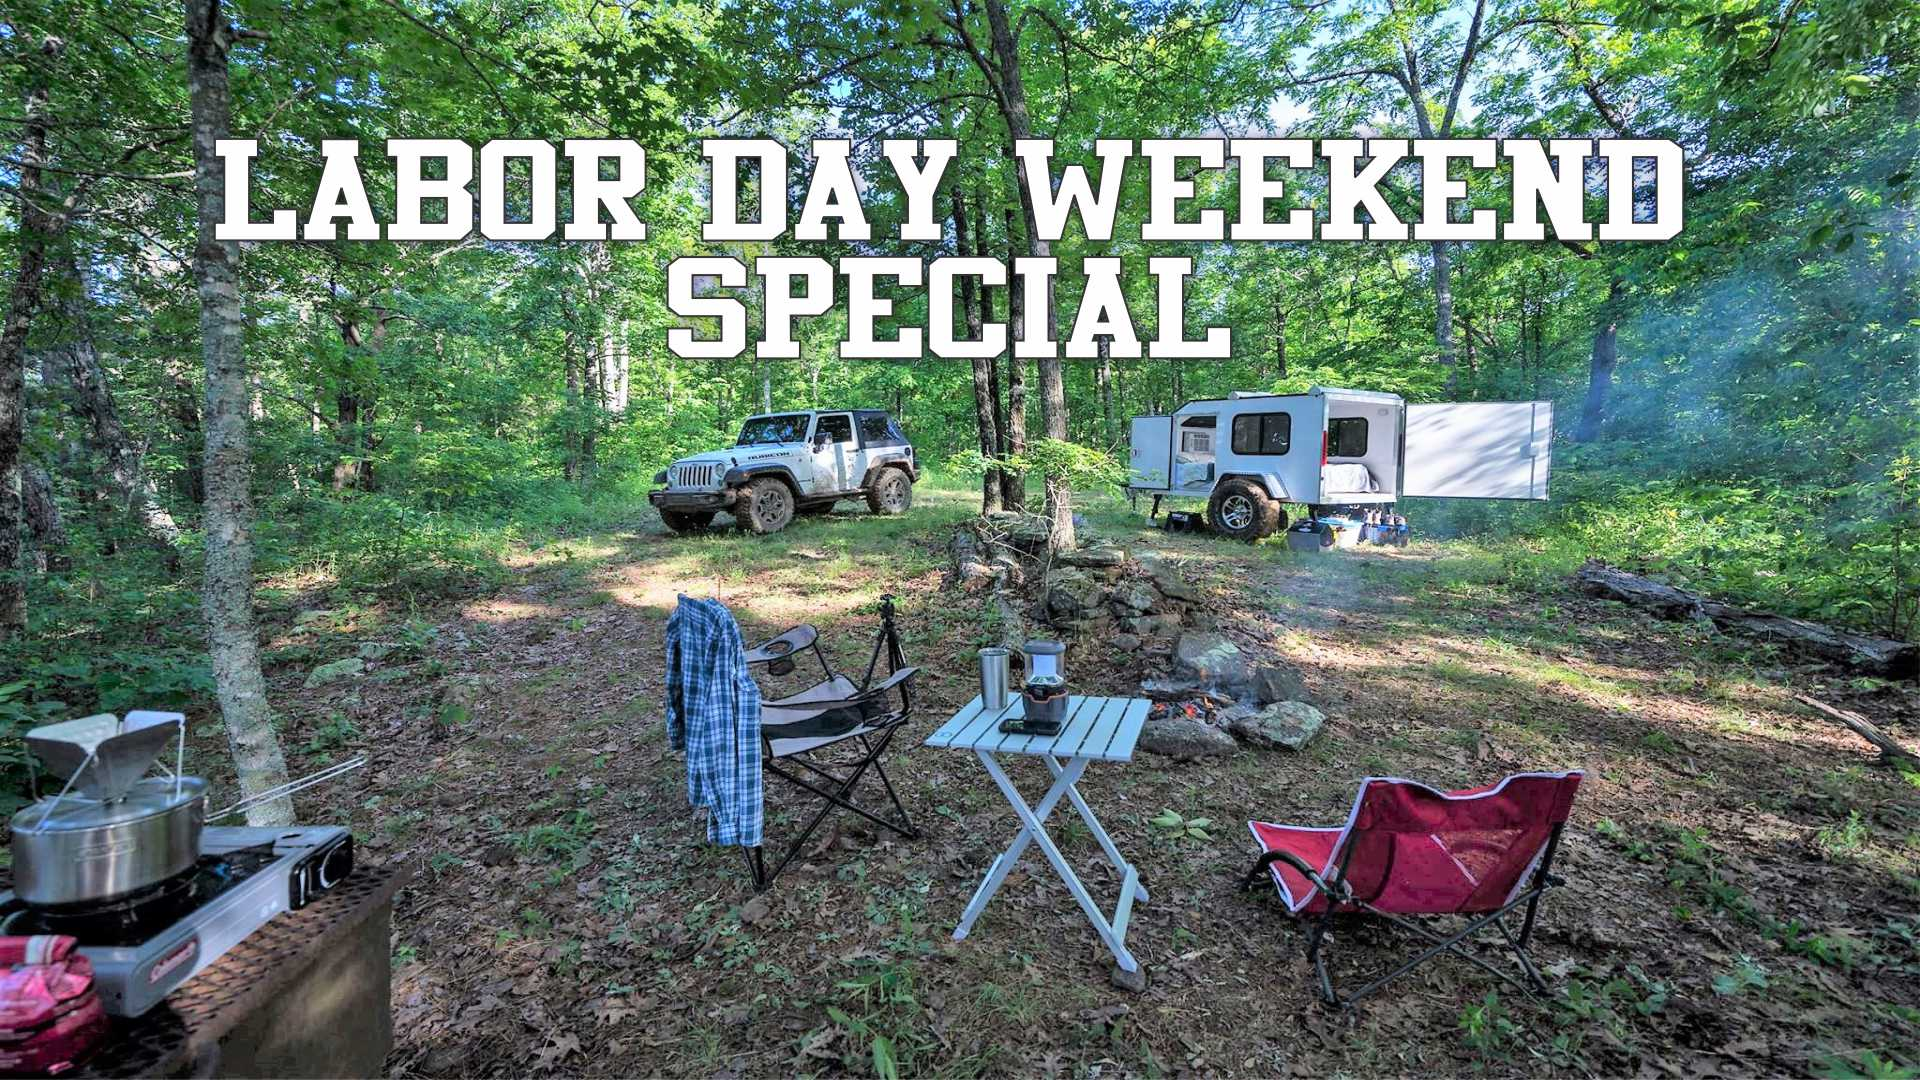 Labor Day Weekend Special in the Ozarks